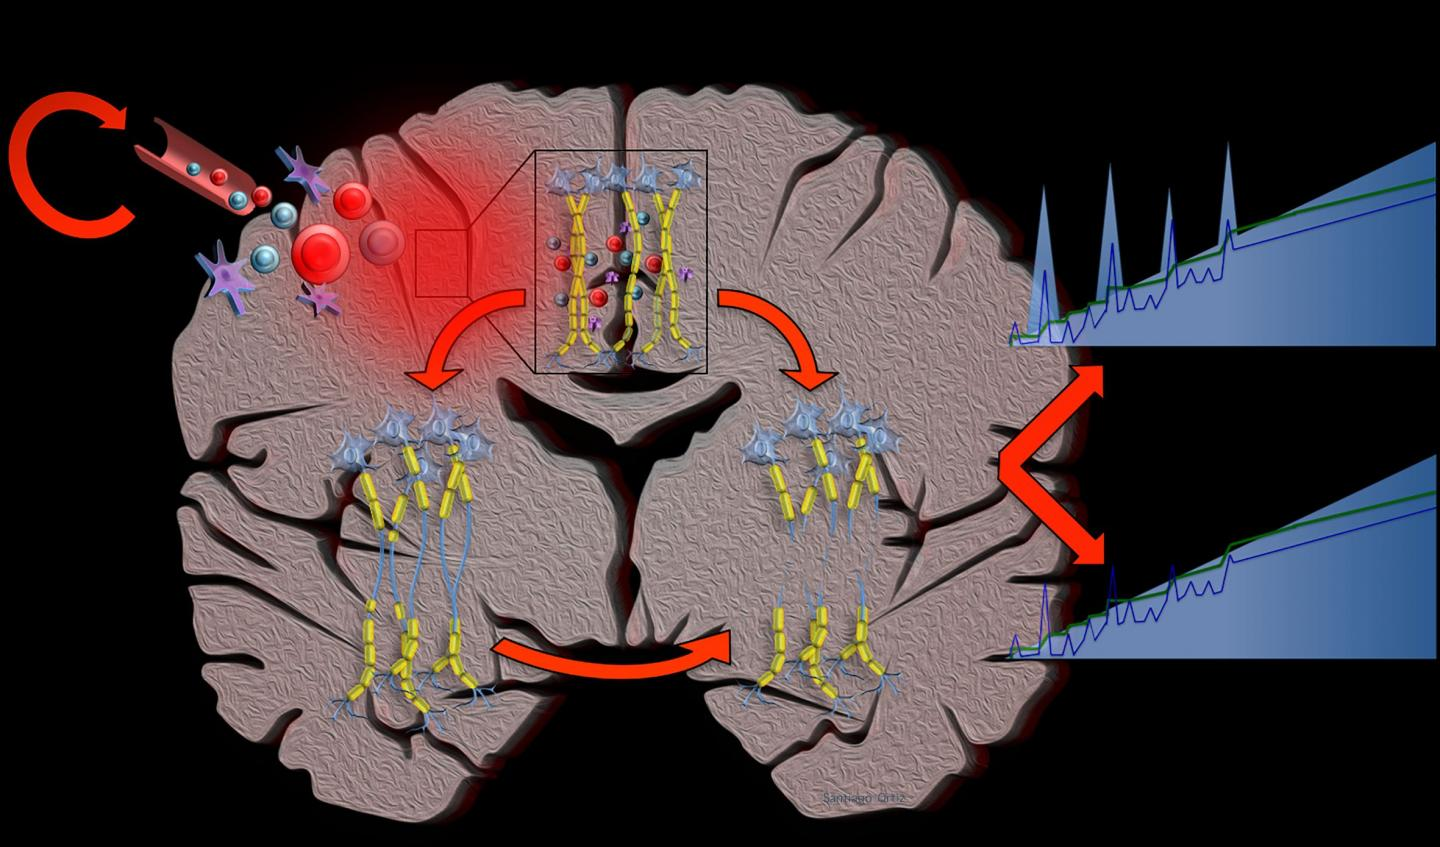 Computational Simulations Suggest Multiple Sclerosis is a Single Disease